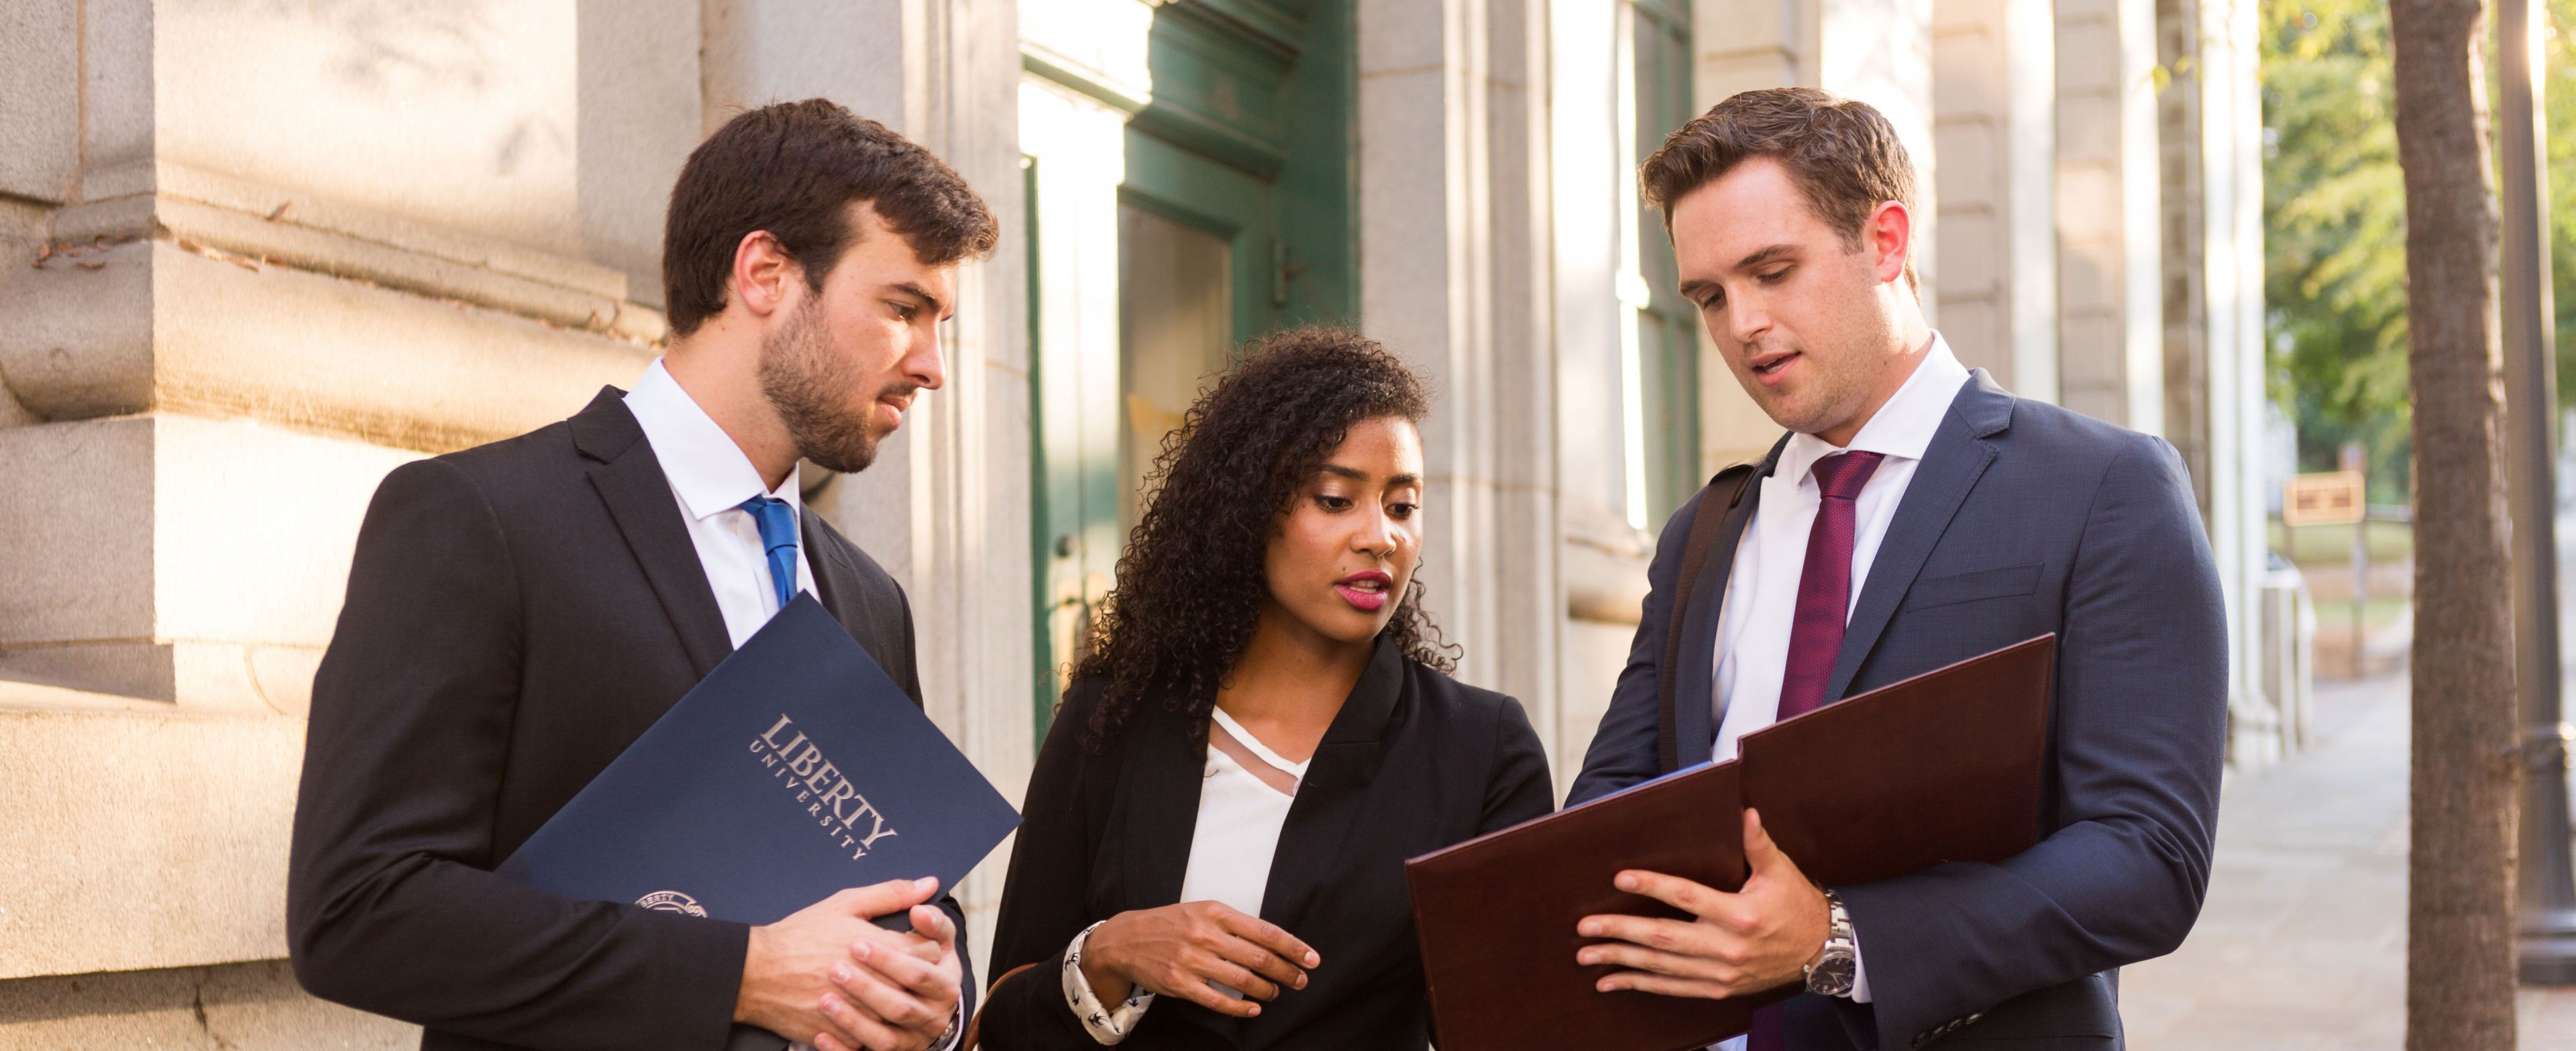 Online MBA - Online Master Of Business Administration in American Legal Studies Online Program Page